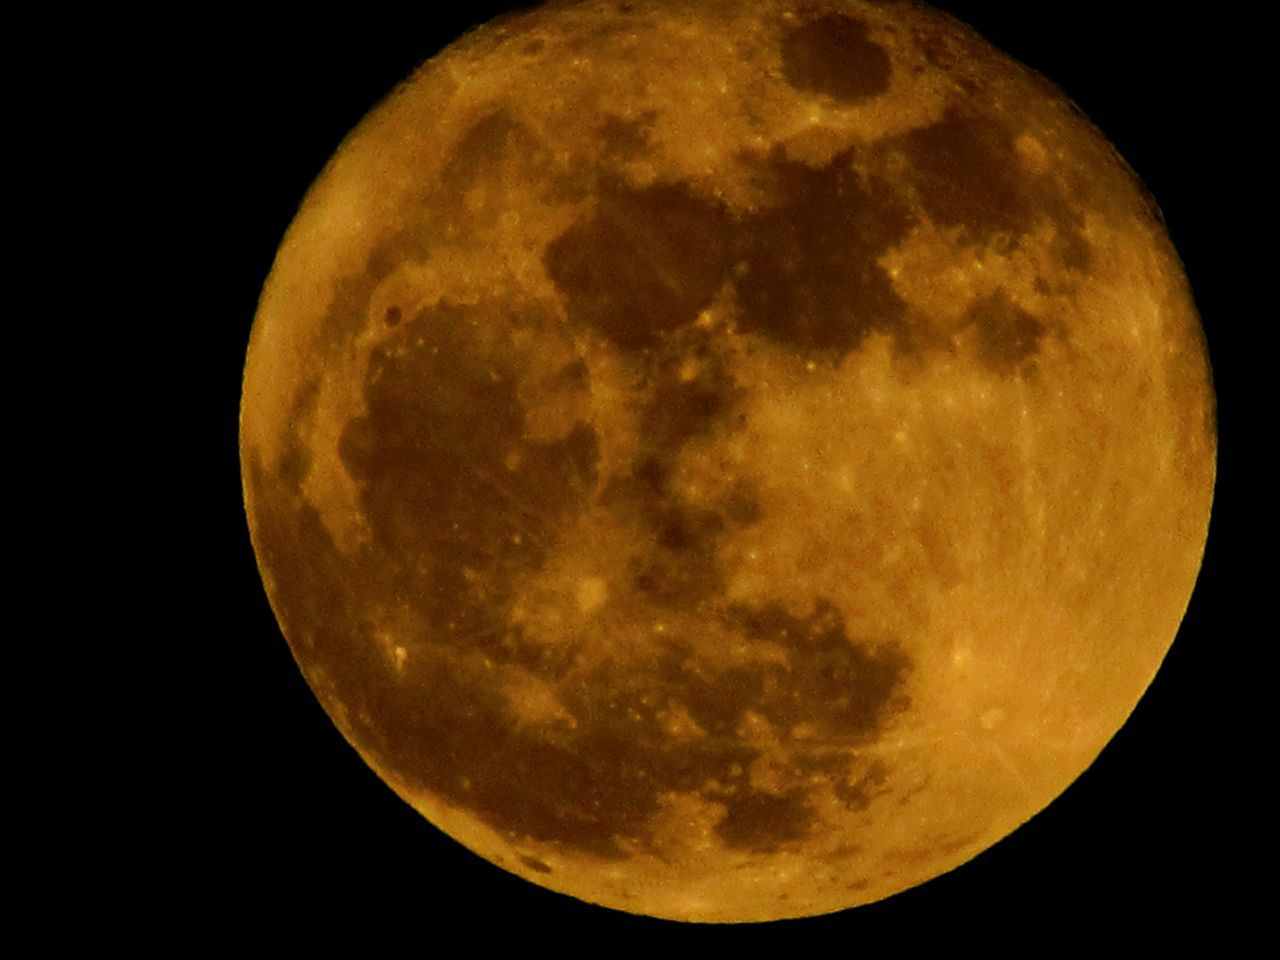 moon, night, astronomy, beauty in nature, moon surface, planetary moon, nature, scenics, no people, yellow, outdoors, space, space exploration, sky, close-up